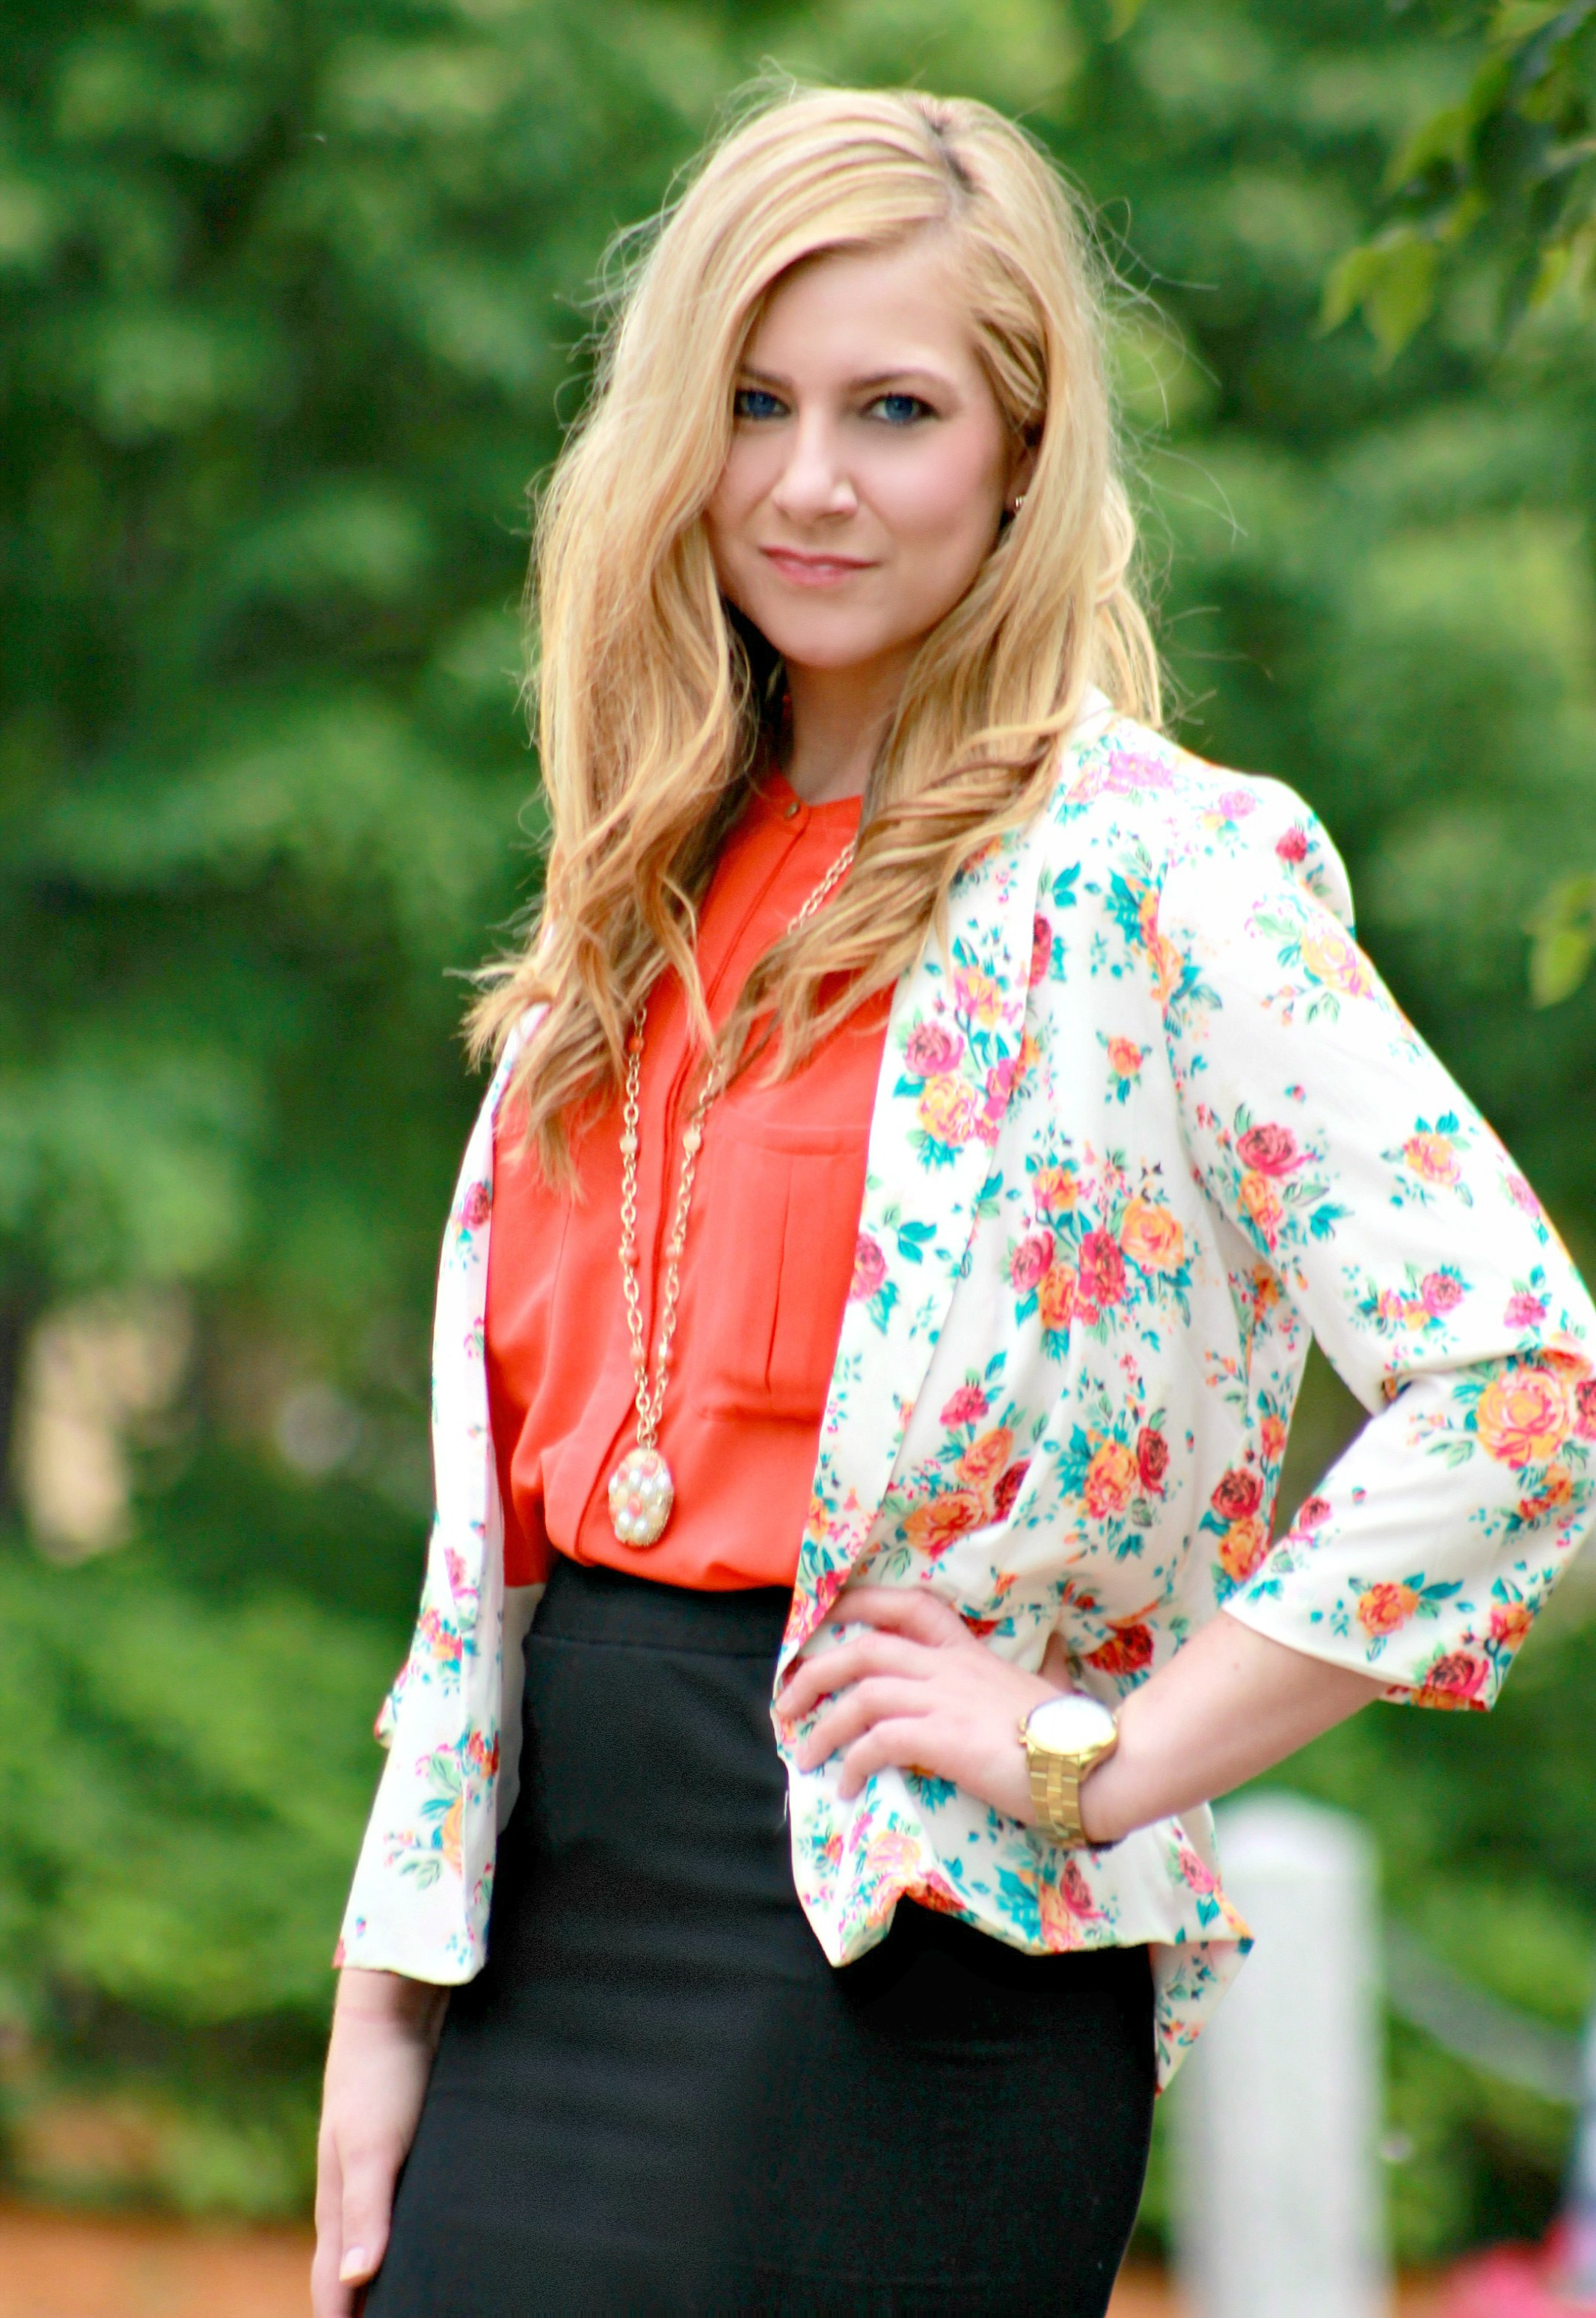 Floral Blazer + Orange Blouse + Gold Watch